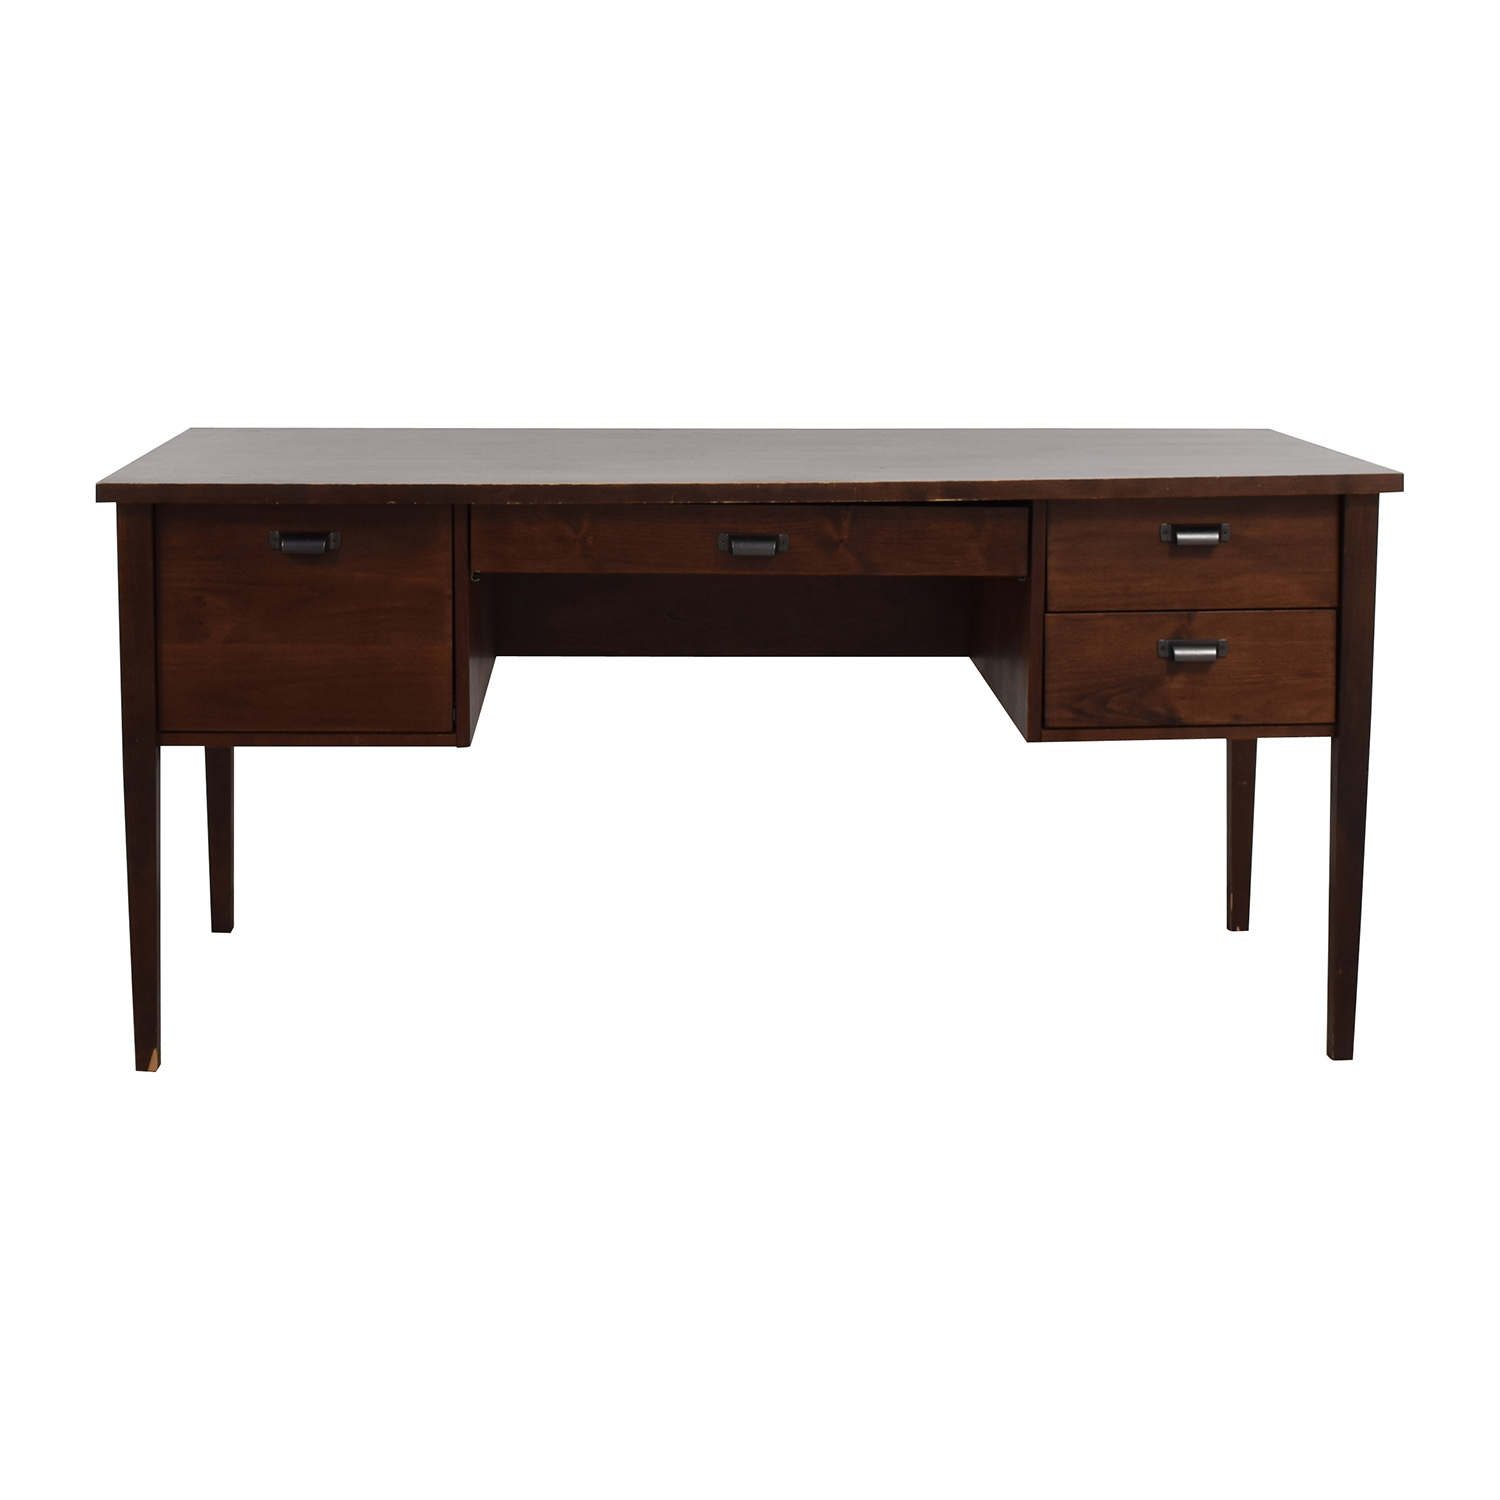 Crate & Barrel Crate & Barrel Hardwood Desk second hand